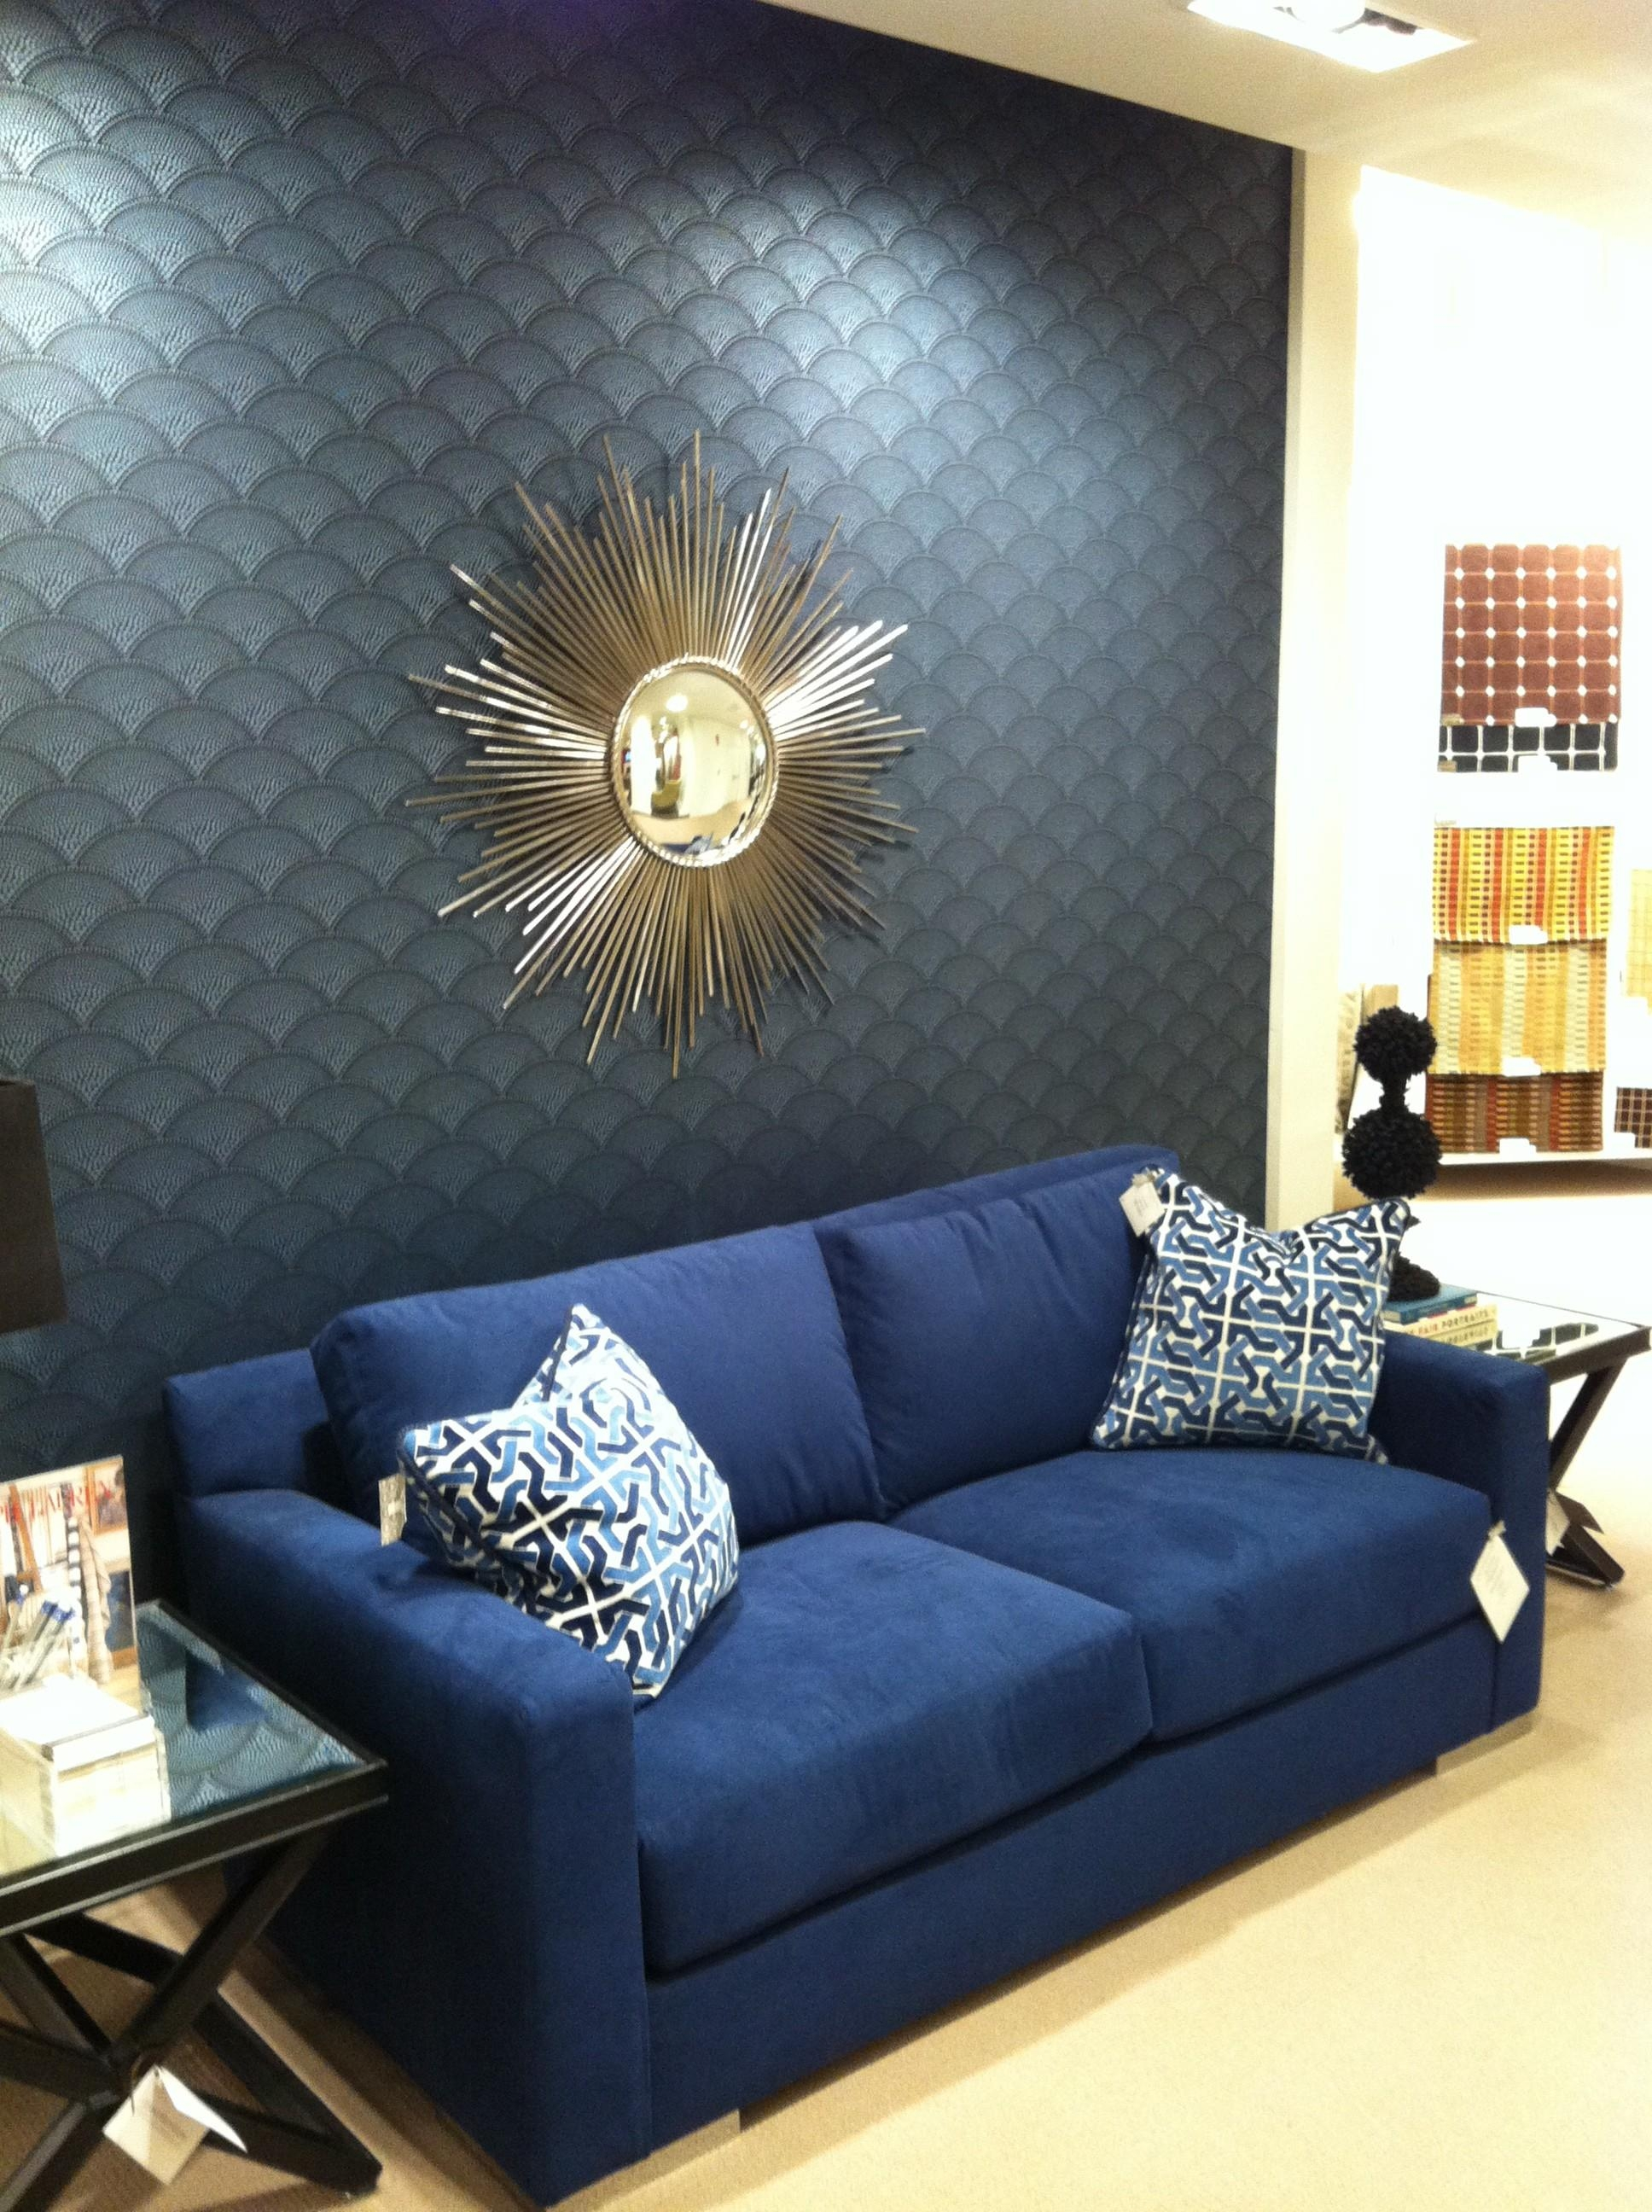 Plain Blue Couch Slipcovers To Show Too Much Of The Room Before With Regard To Navy Blue Slipcovers (Image 19 of 20)